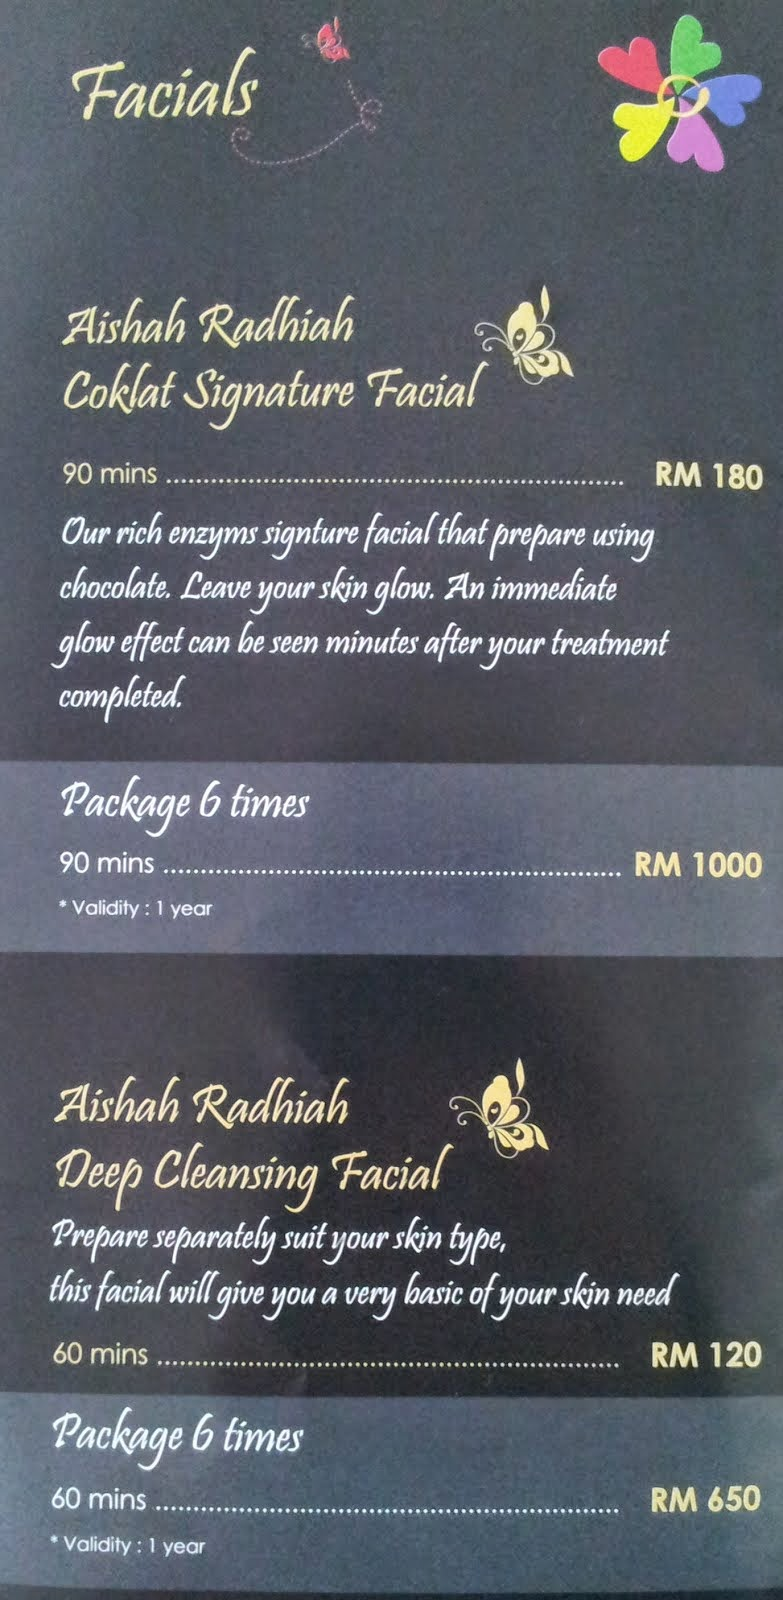 AR Beauty & Spa Servicess